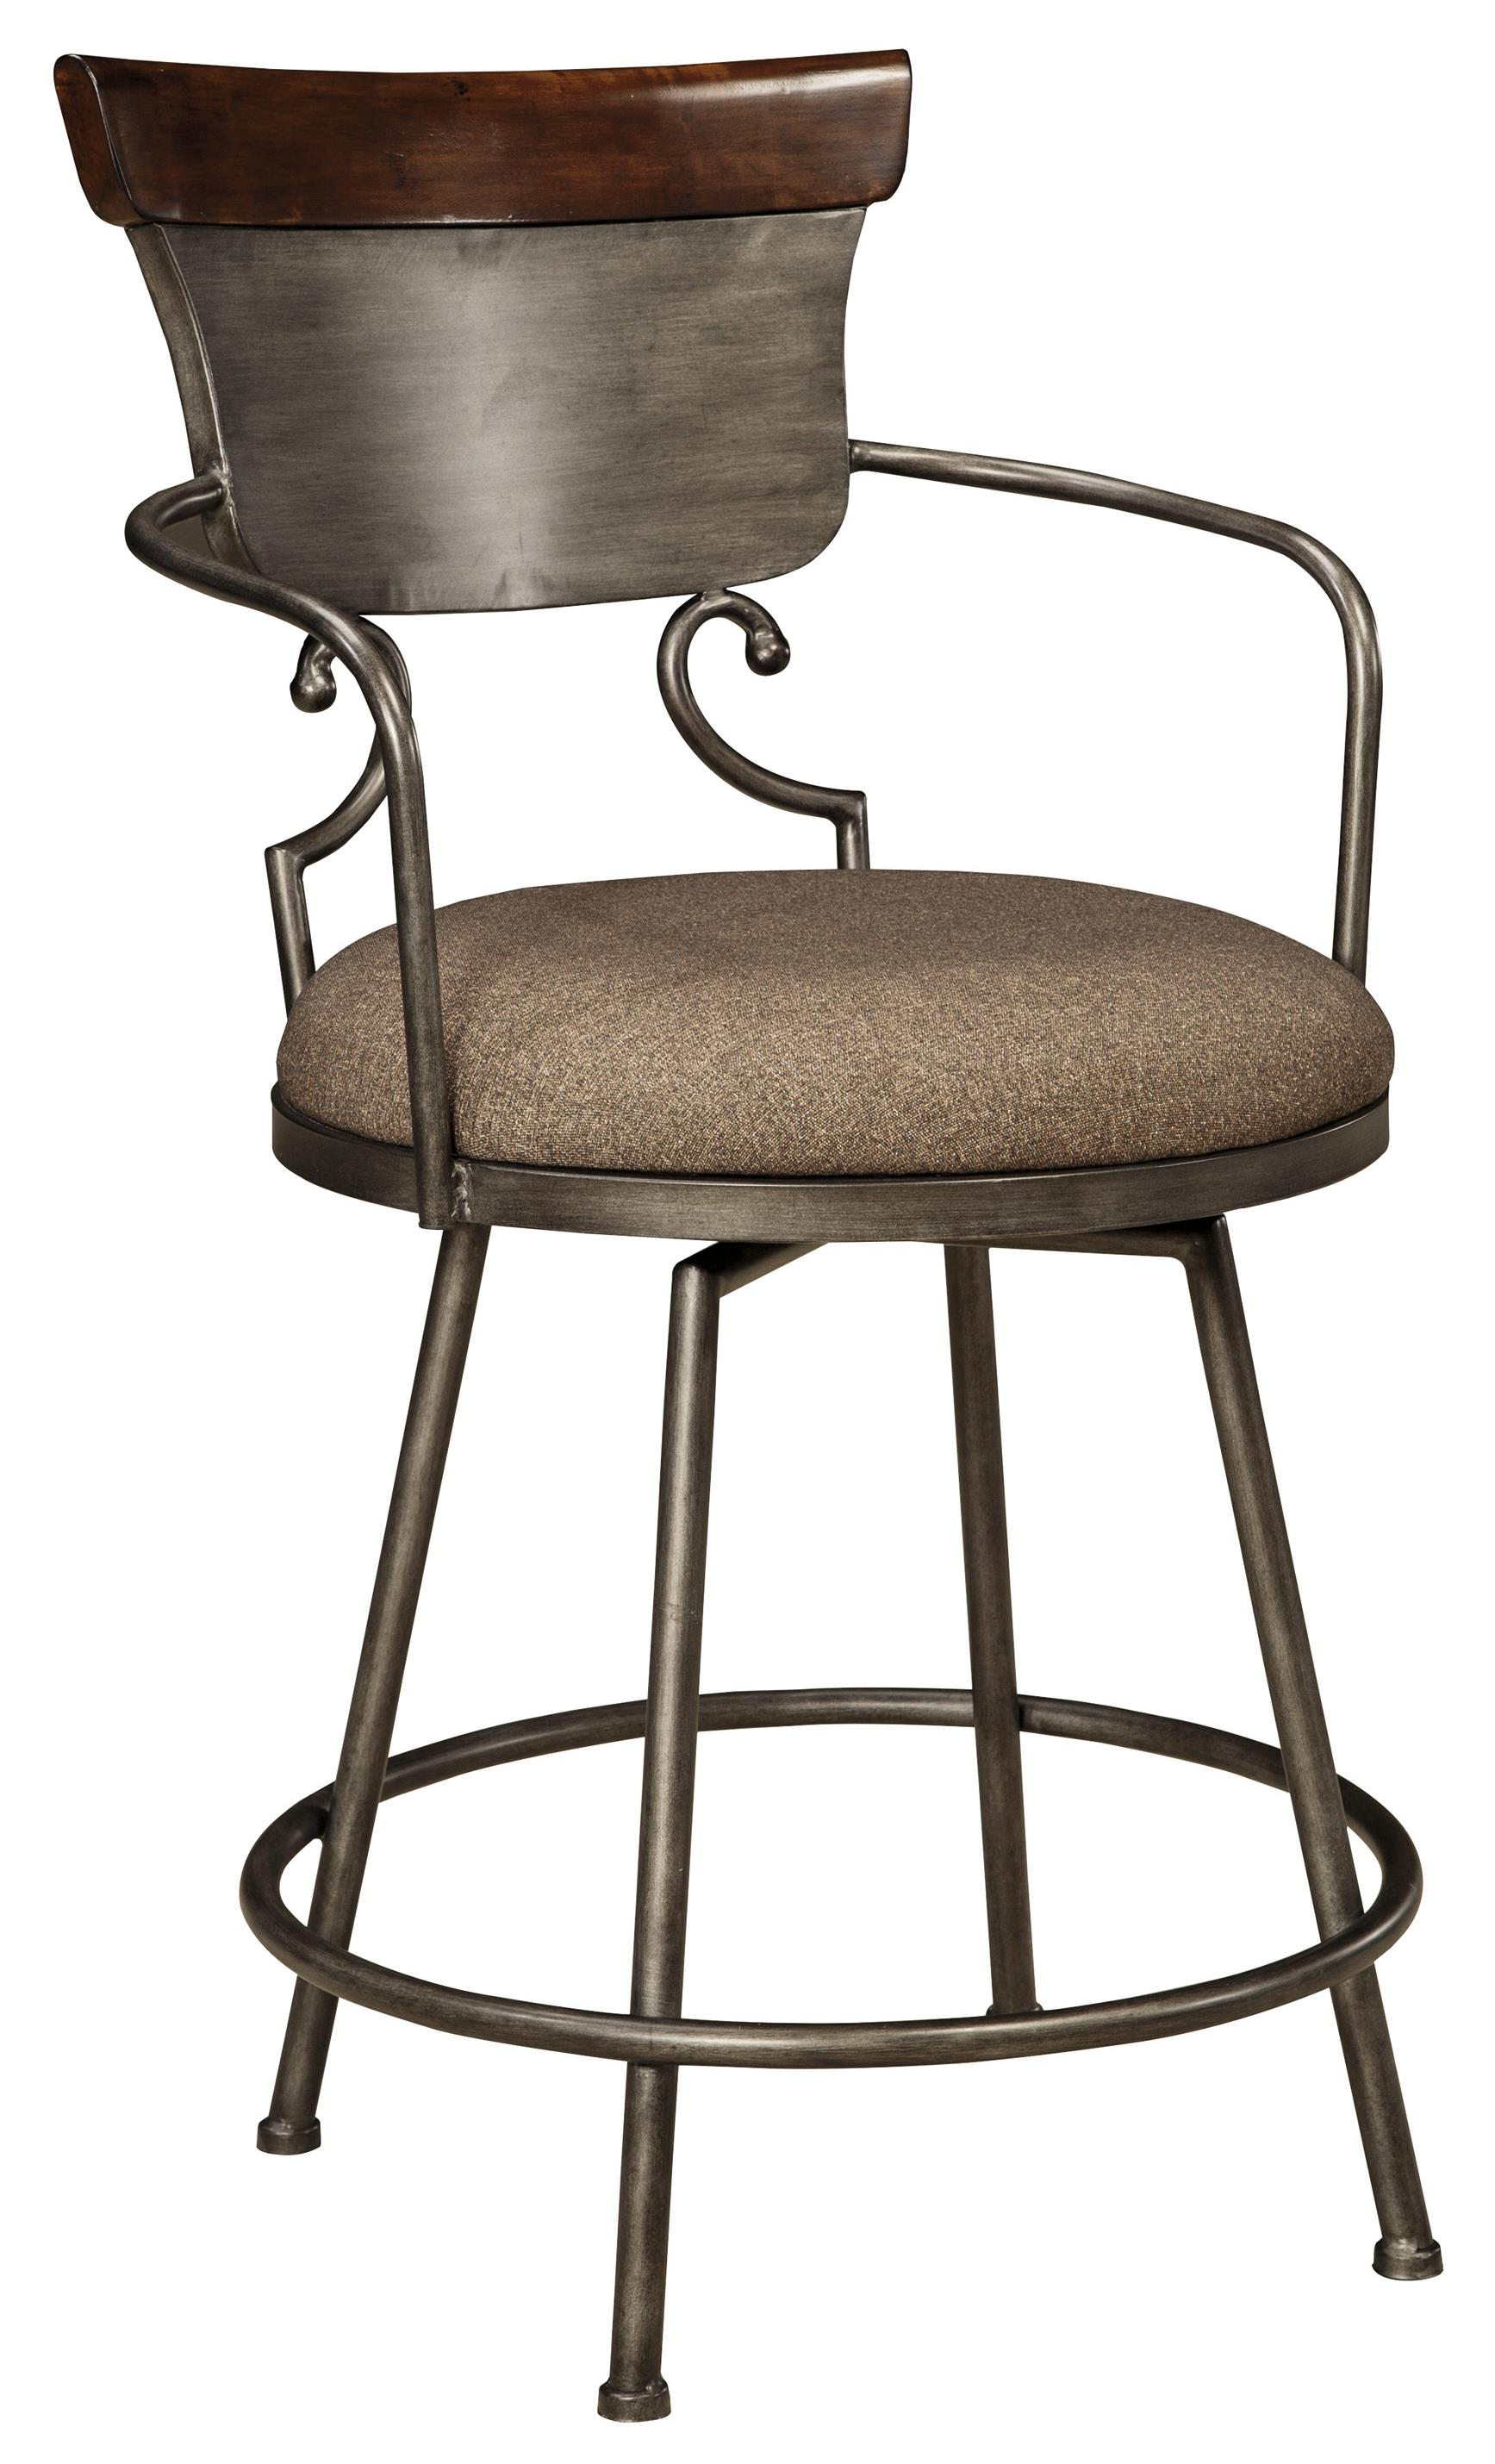 bar upholstered of set stools maldives dining height open grey stool parsons counter back pin